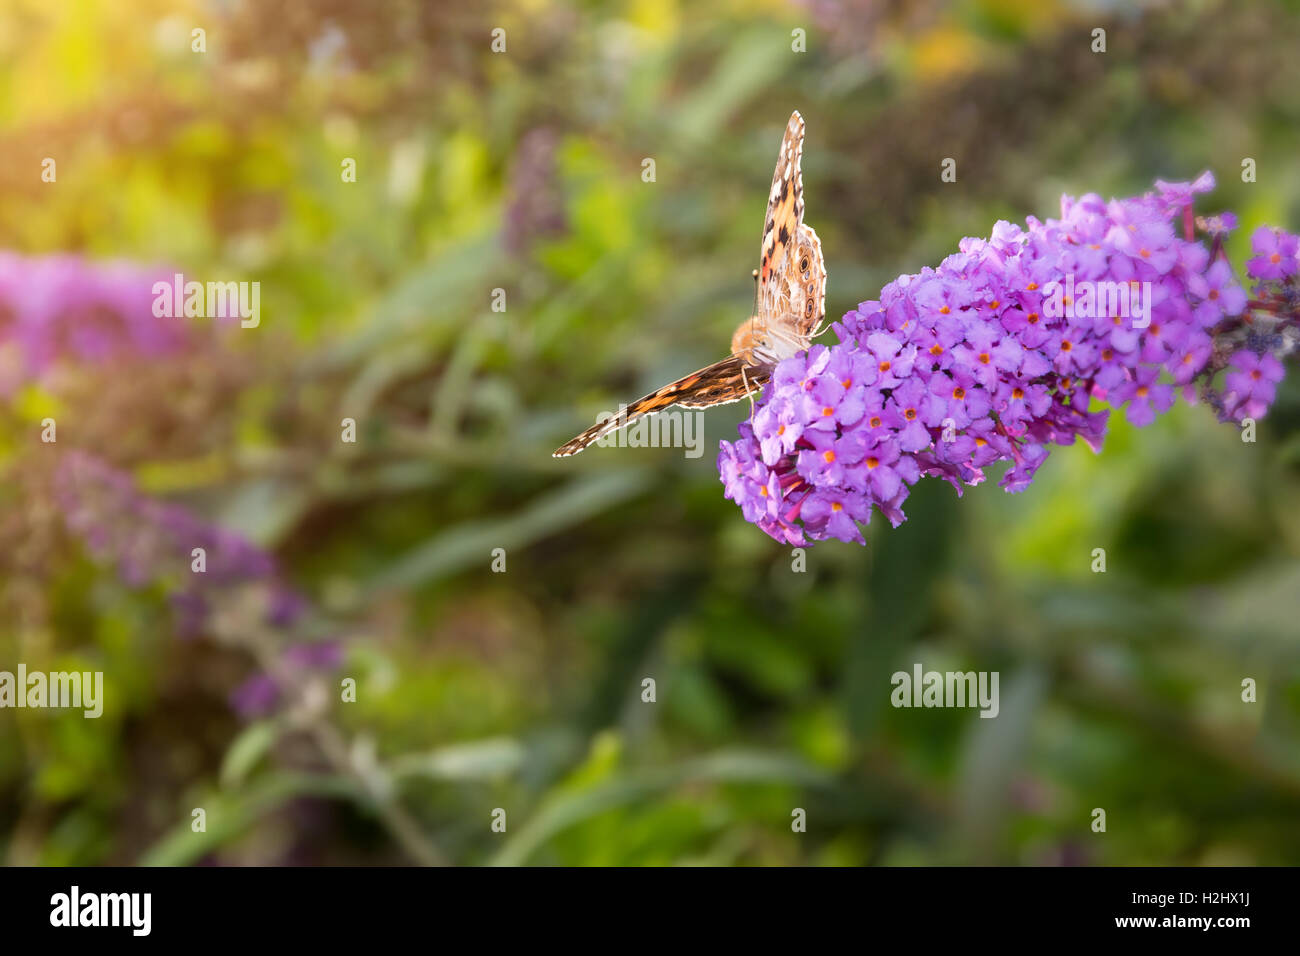 Painted Lady butterfly, Vanessa cardui, feeding on nectar from buddleia flower lit by afternoon sun. - Stock Image